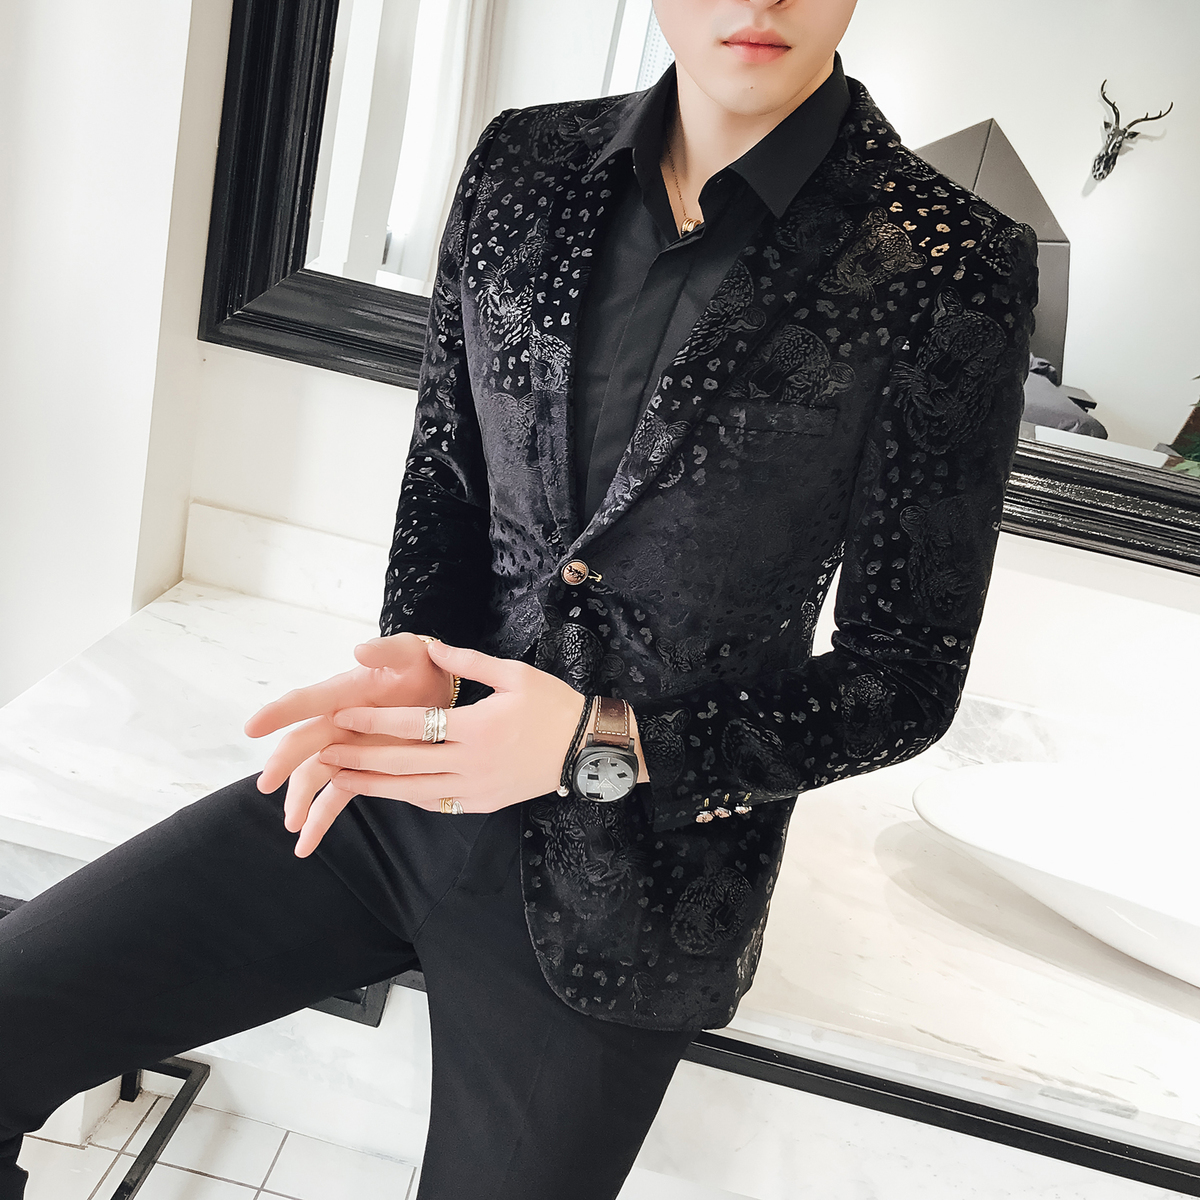 FanZhuan free shipping new male men s fashion casual business gentleman long sleeved Slim suit blazer